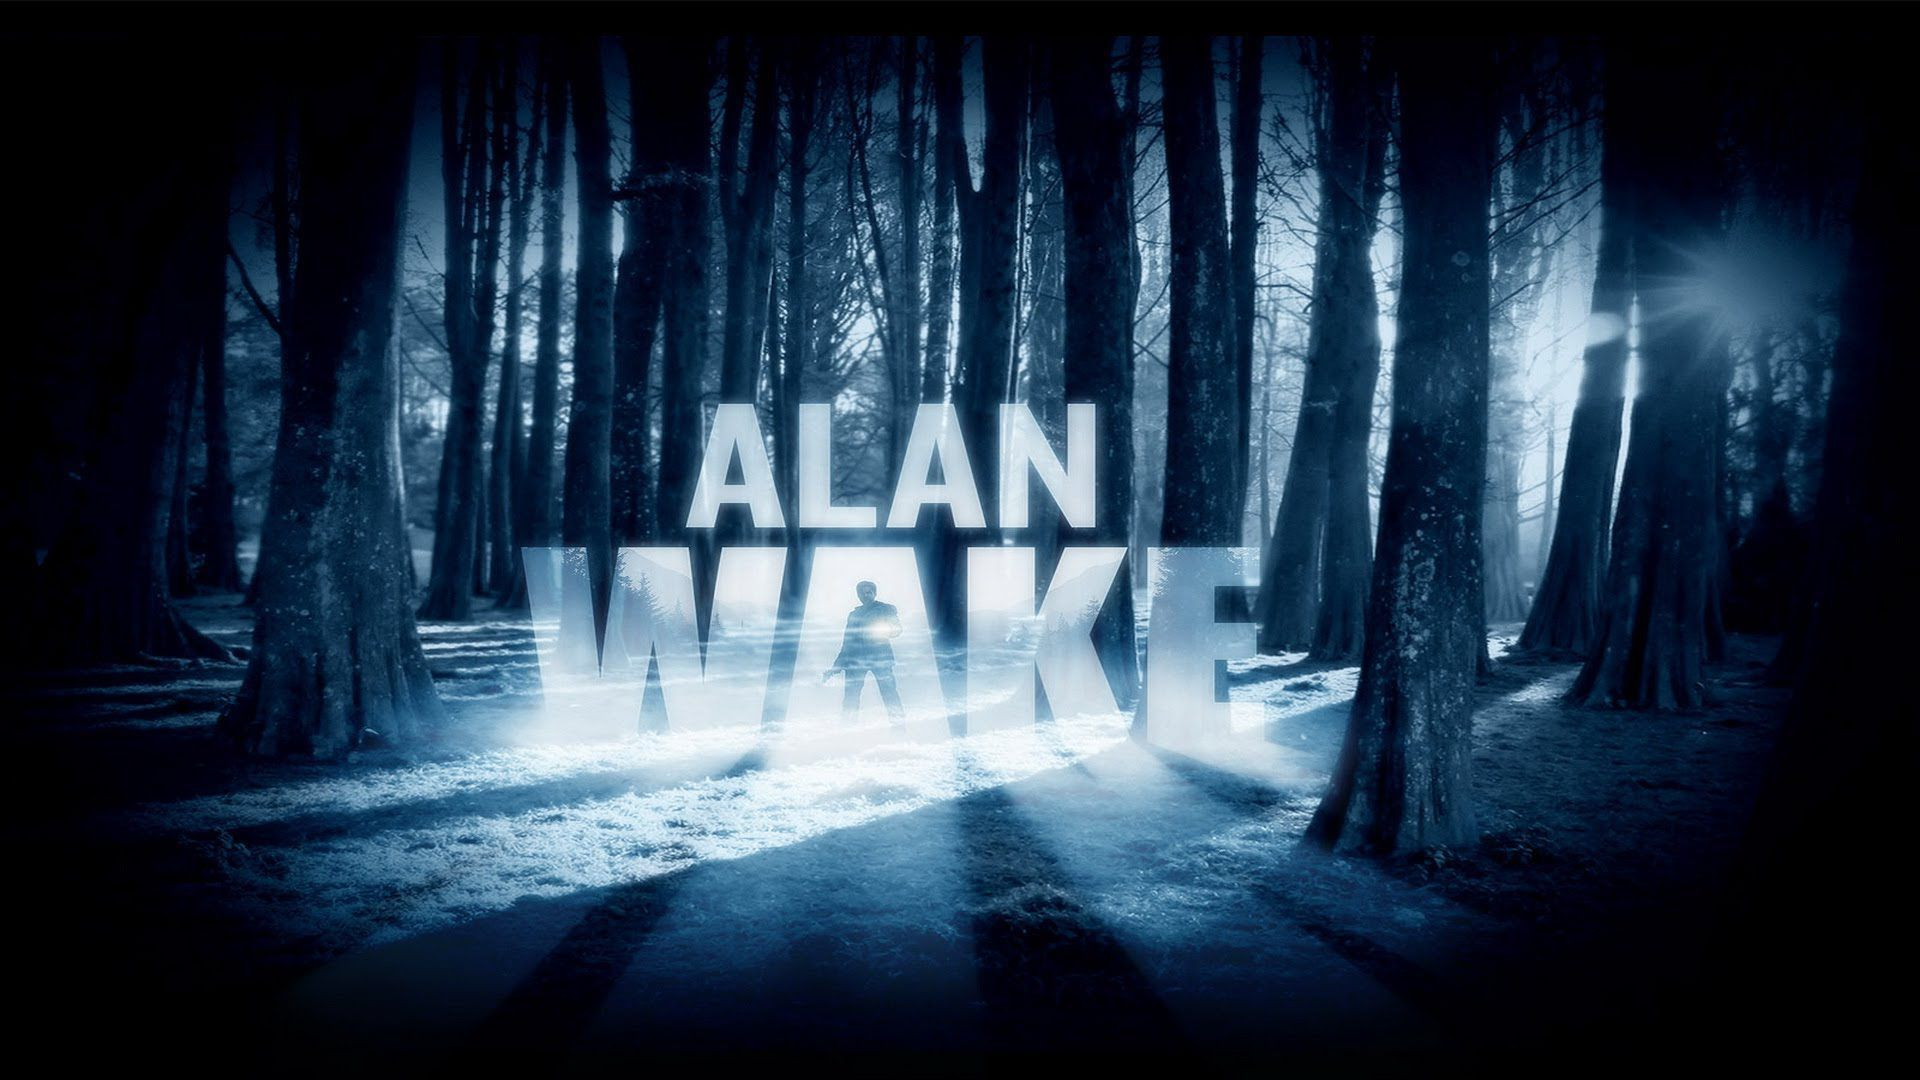 Alan Wake HD Background